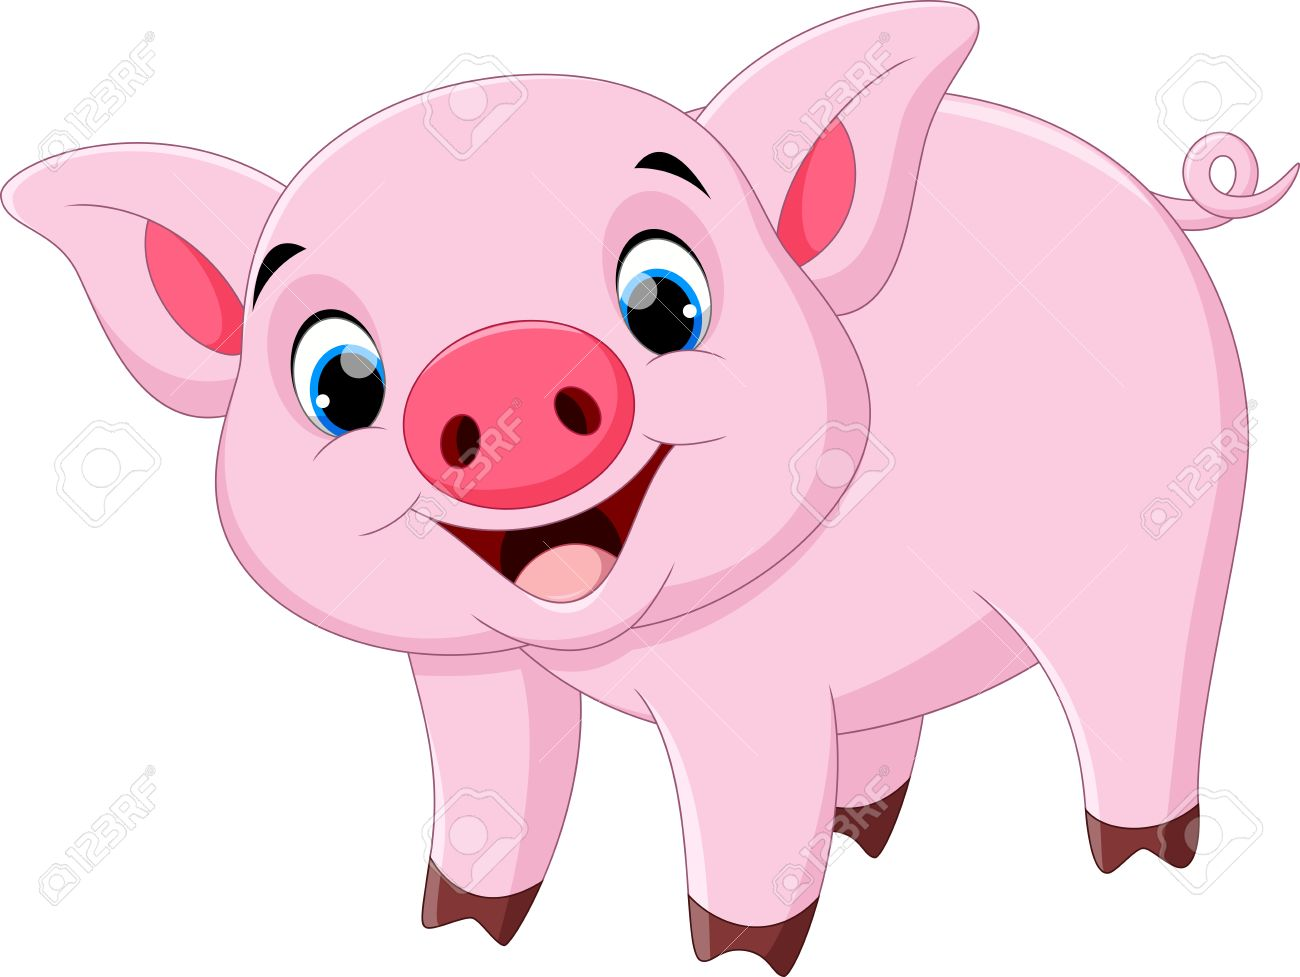 hight resolution of cute pig cartoon stock vector 55360479